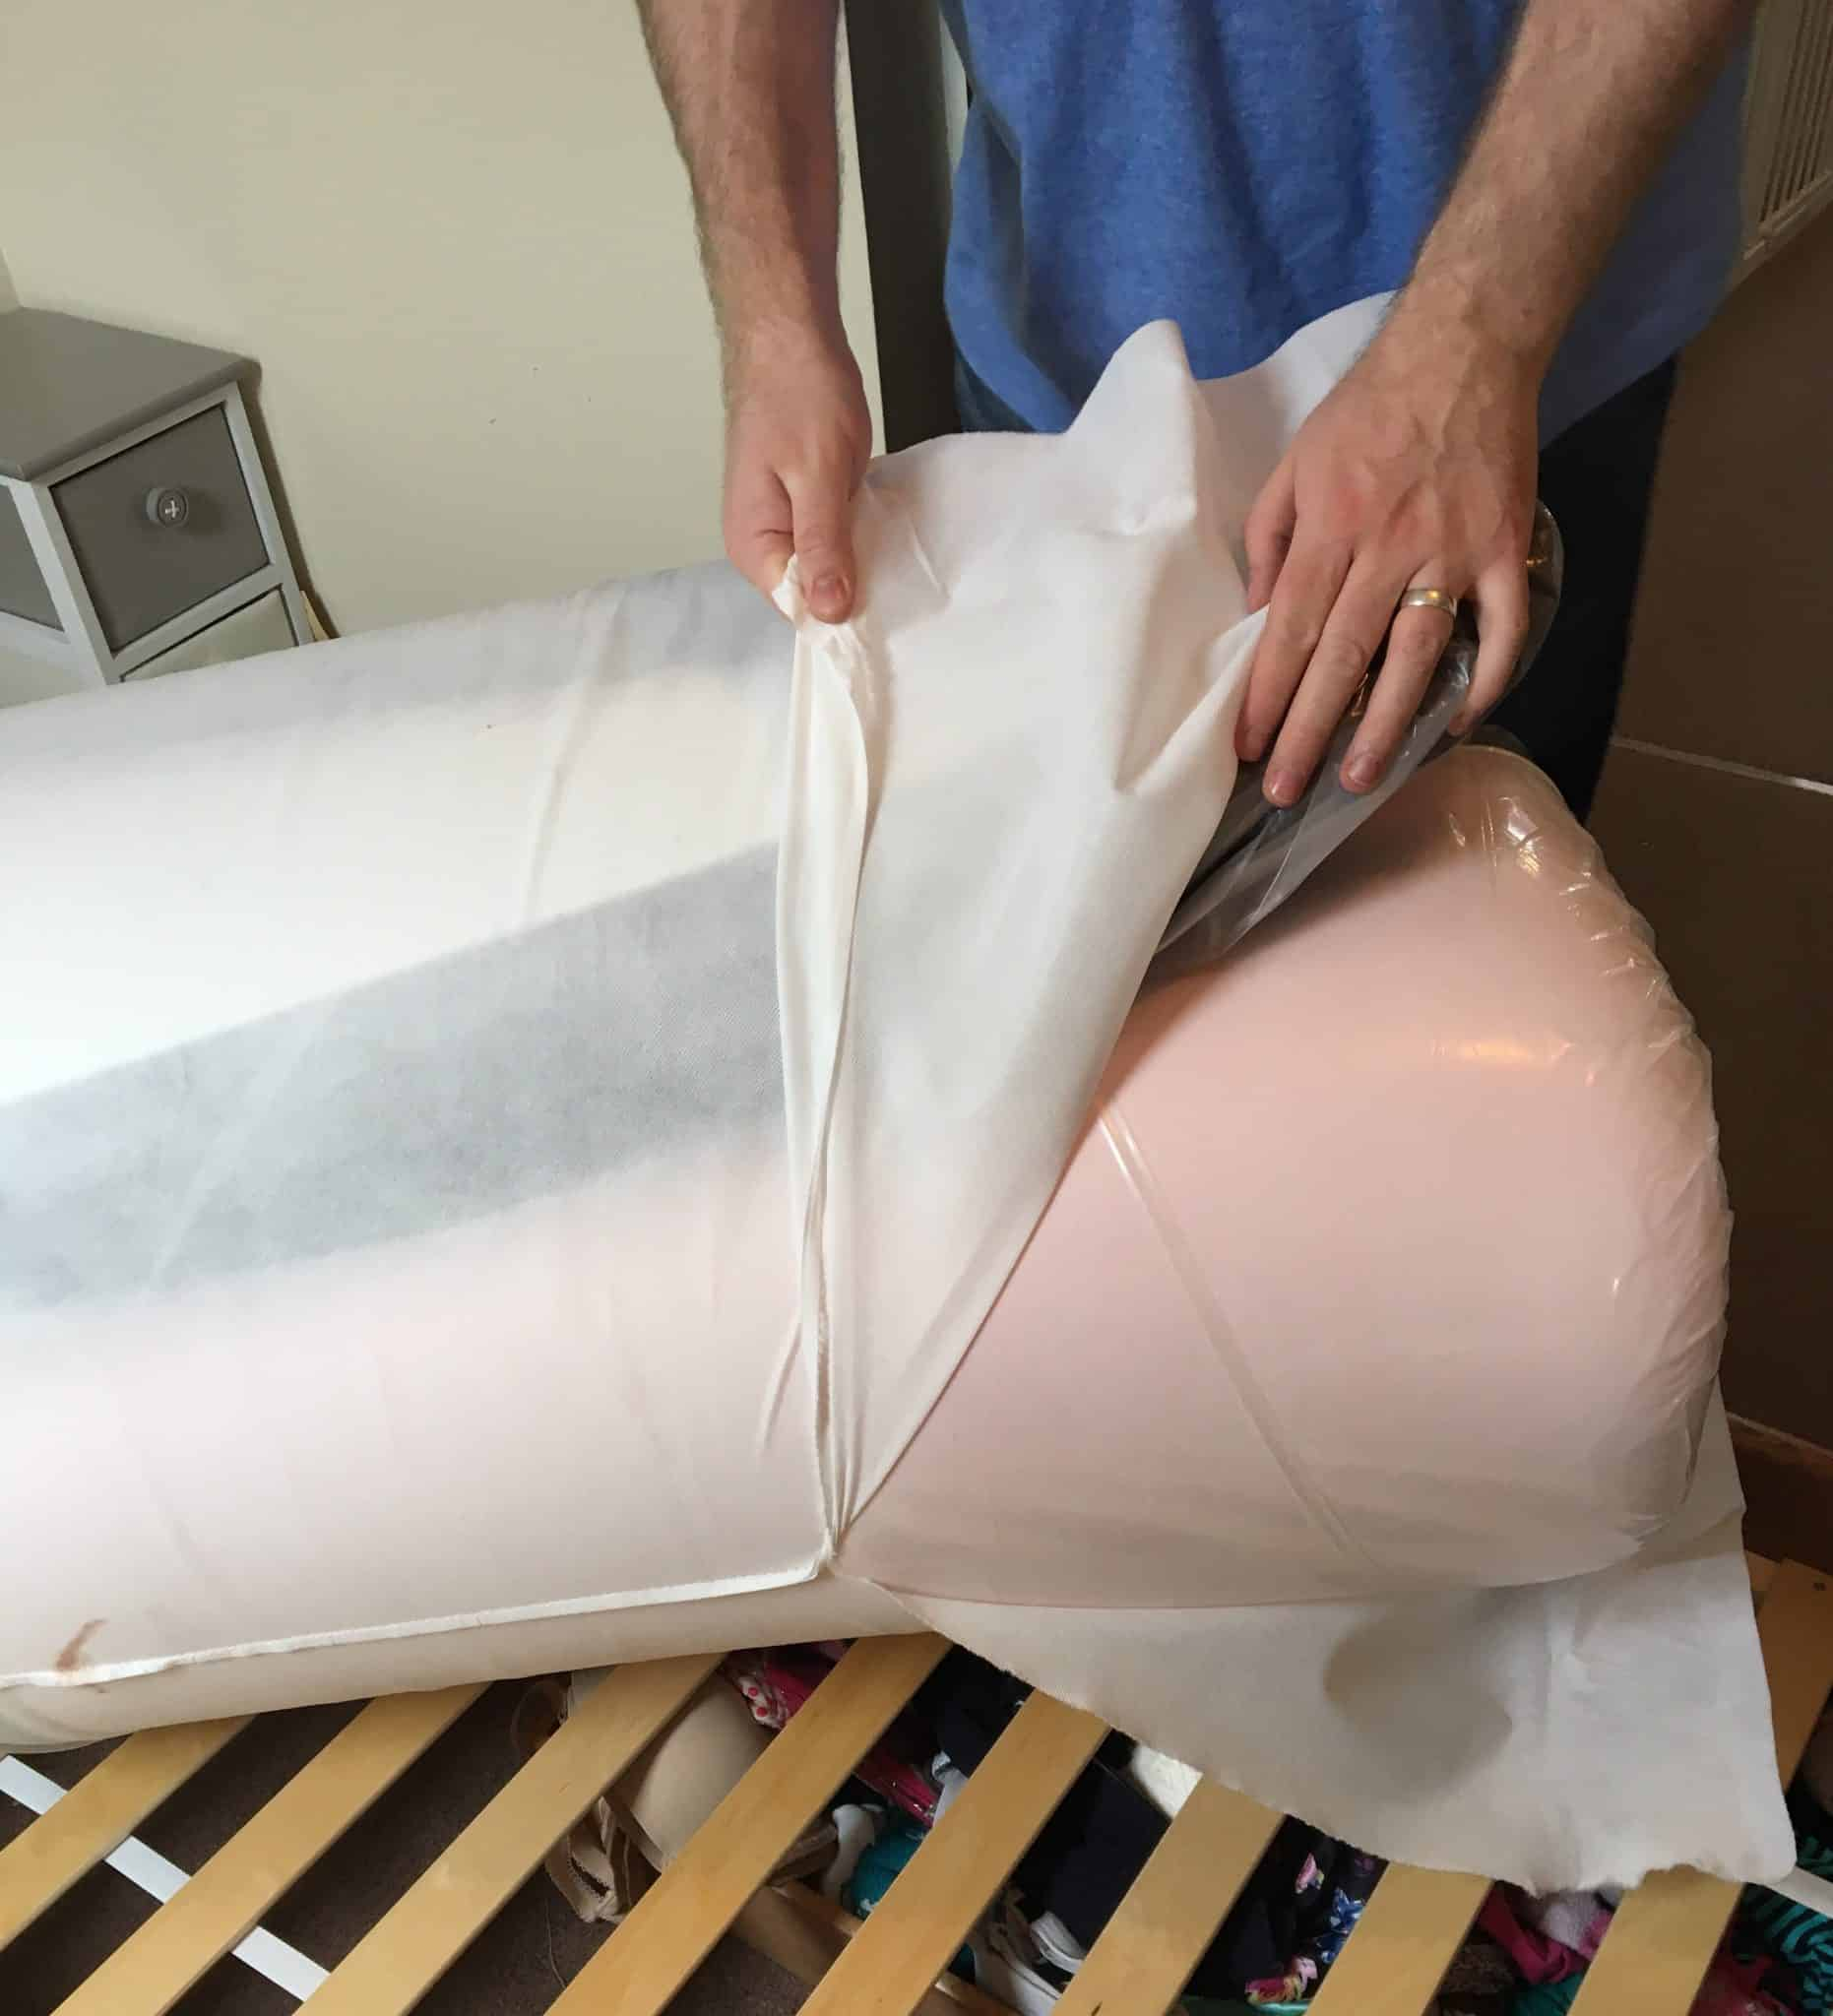 Taking off the fabric cover on the zen guru